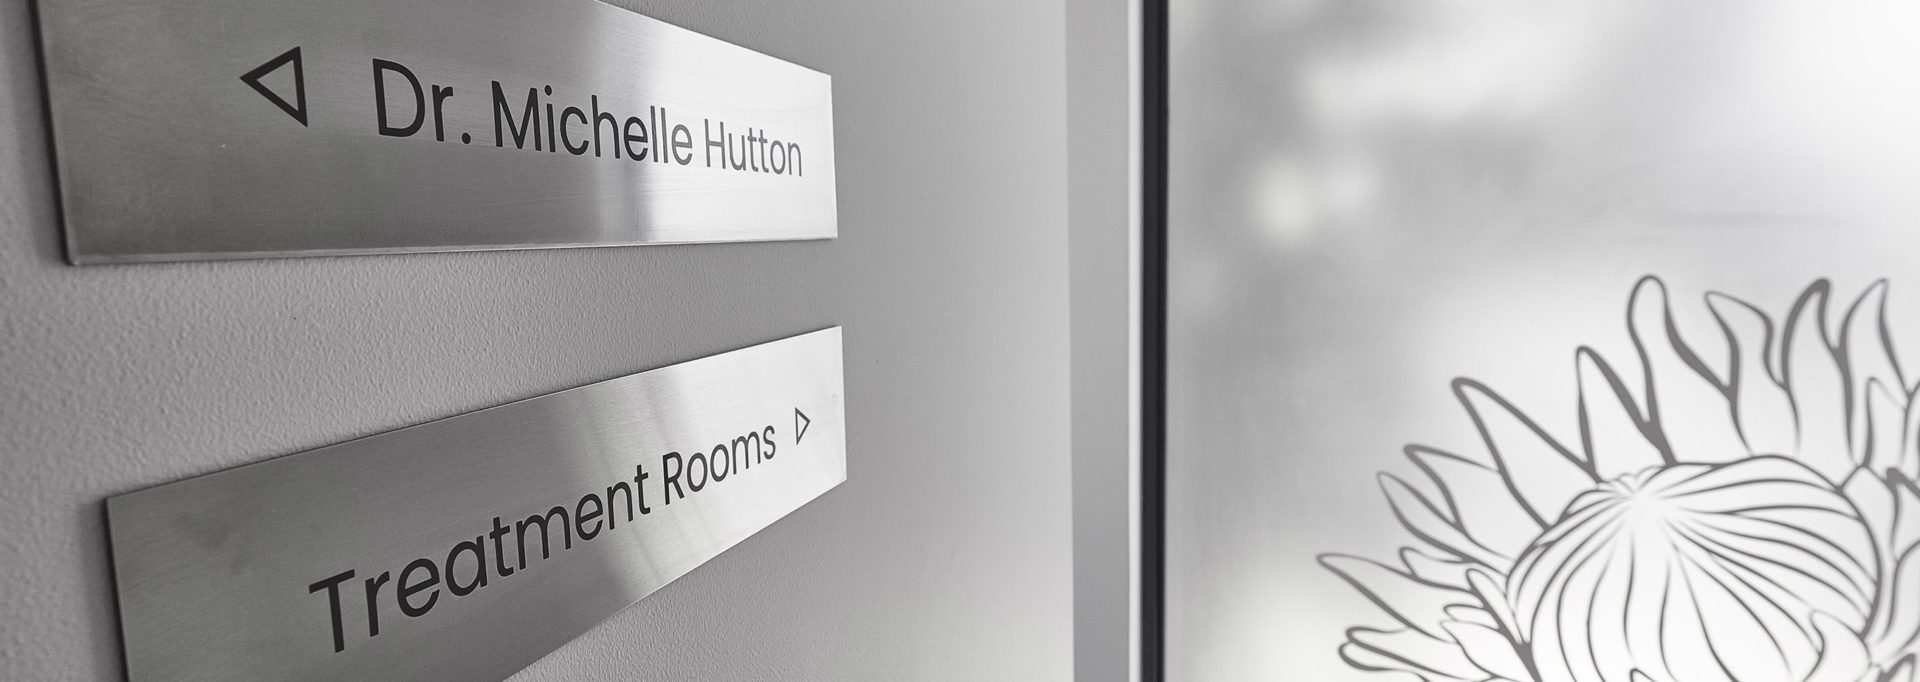 banner-drhutton-rooms